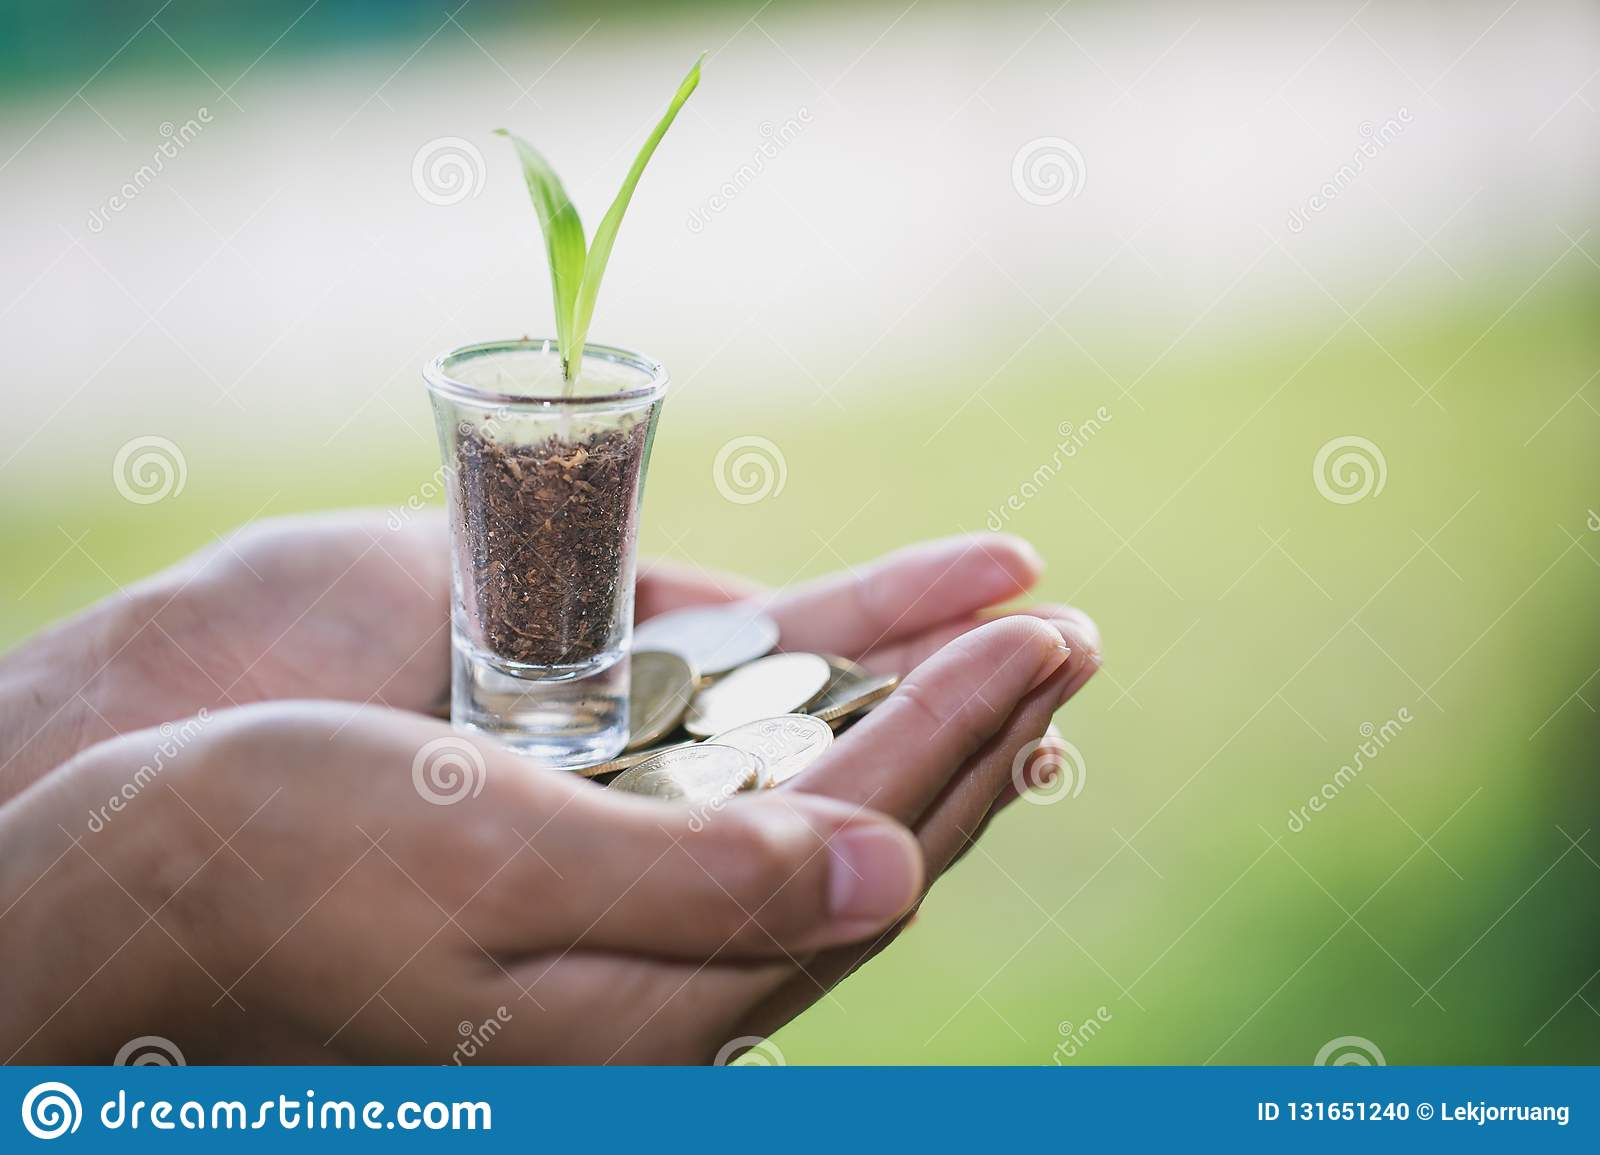 Plant growing from money coins in the glass jar held by a man`s hands, business and financial metaphor concept